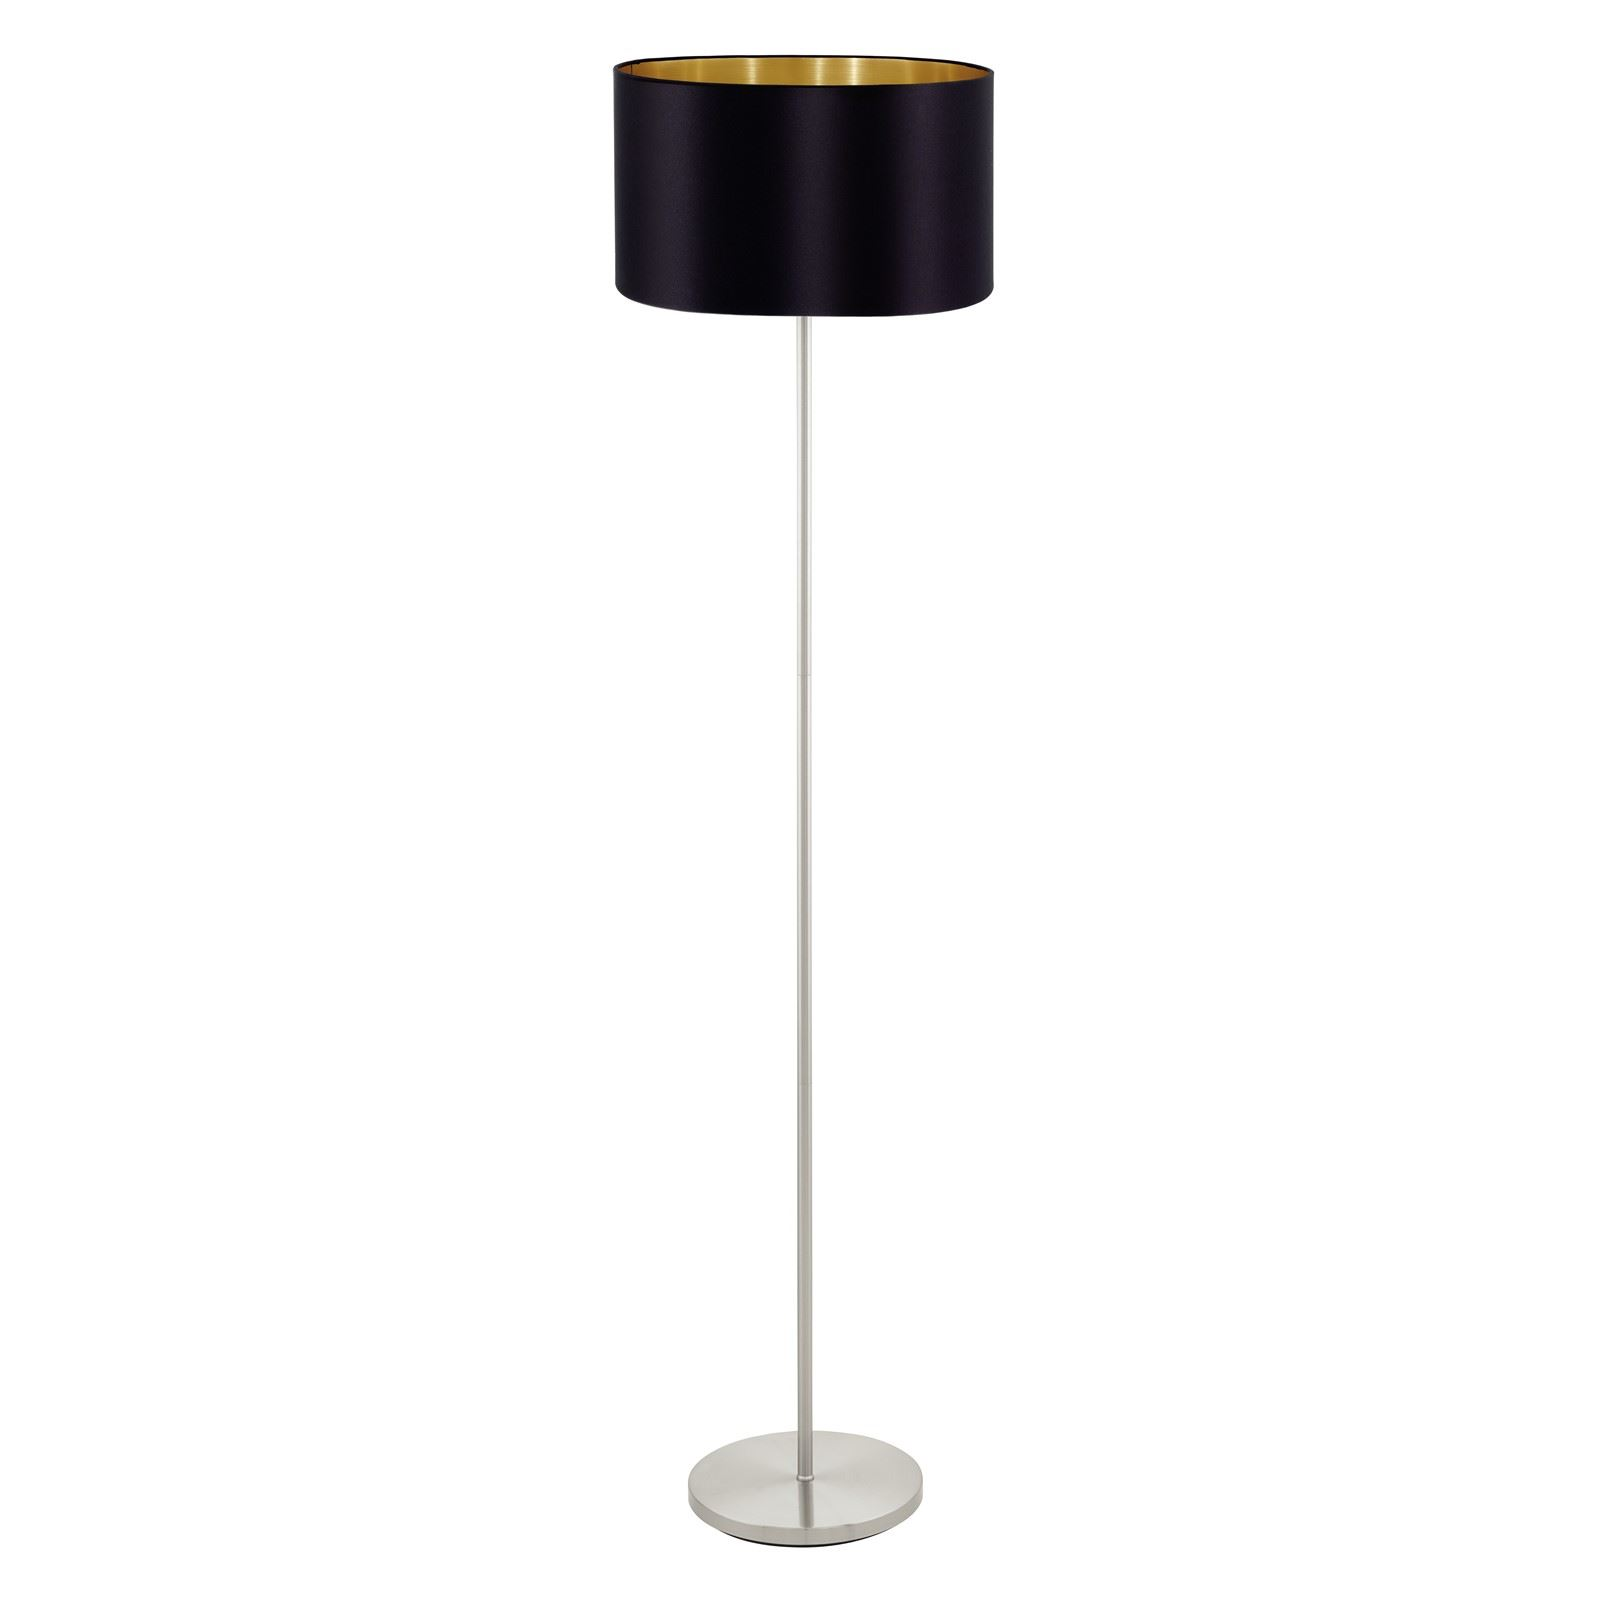 Maserlo Steel Satin Nickel Floor Lamp 1 Light With Black-Gold Shade